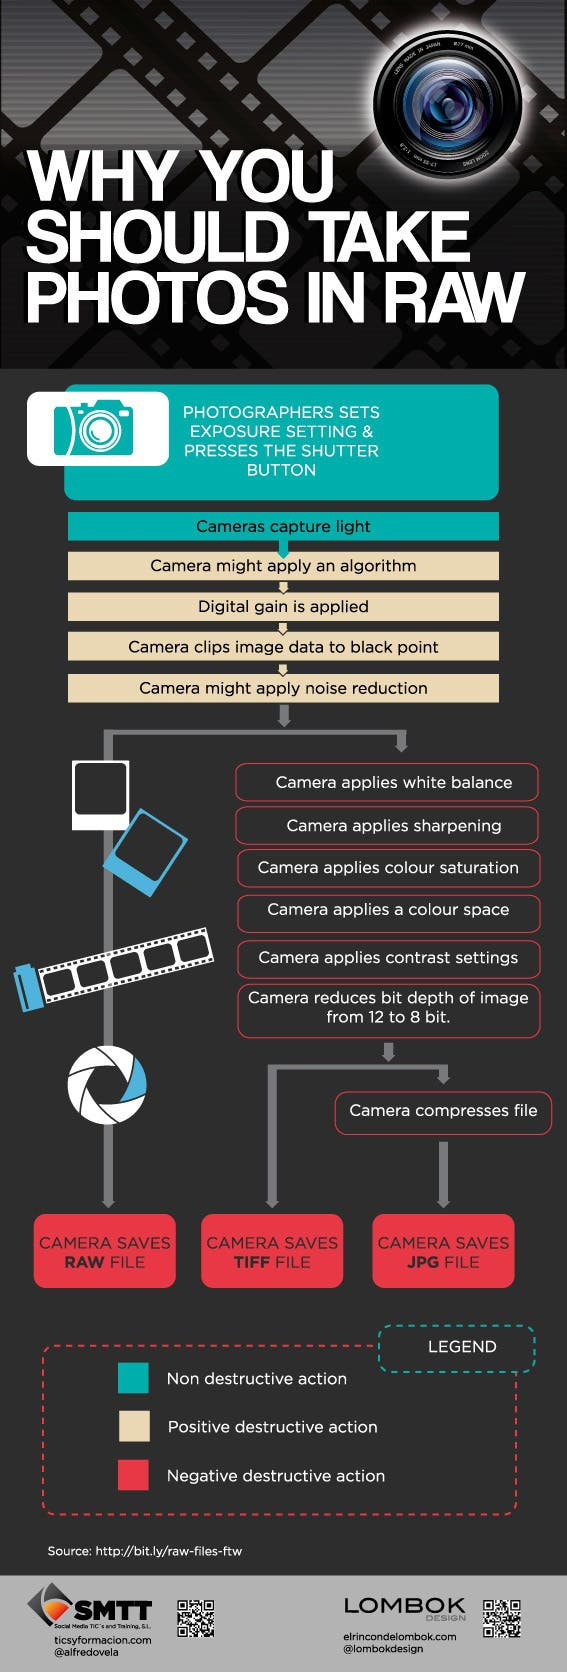 Photography Cheat Sheet: Why Shoot Photos in RAW